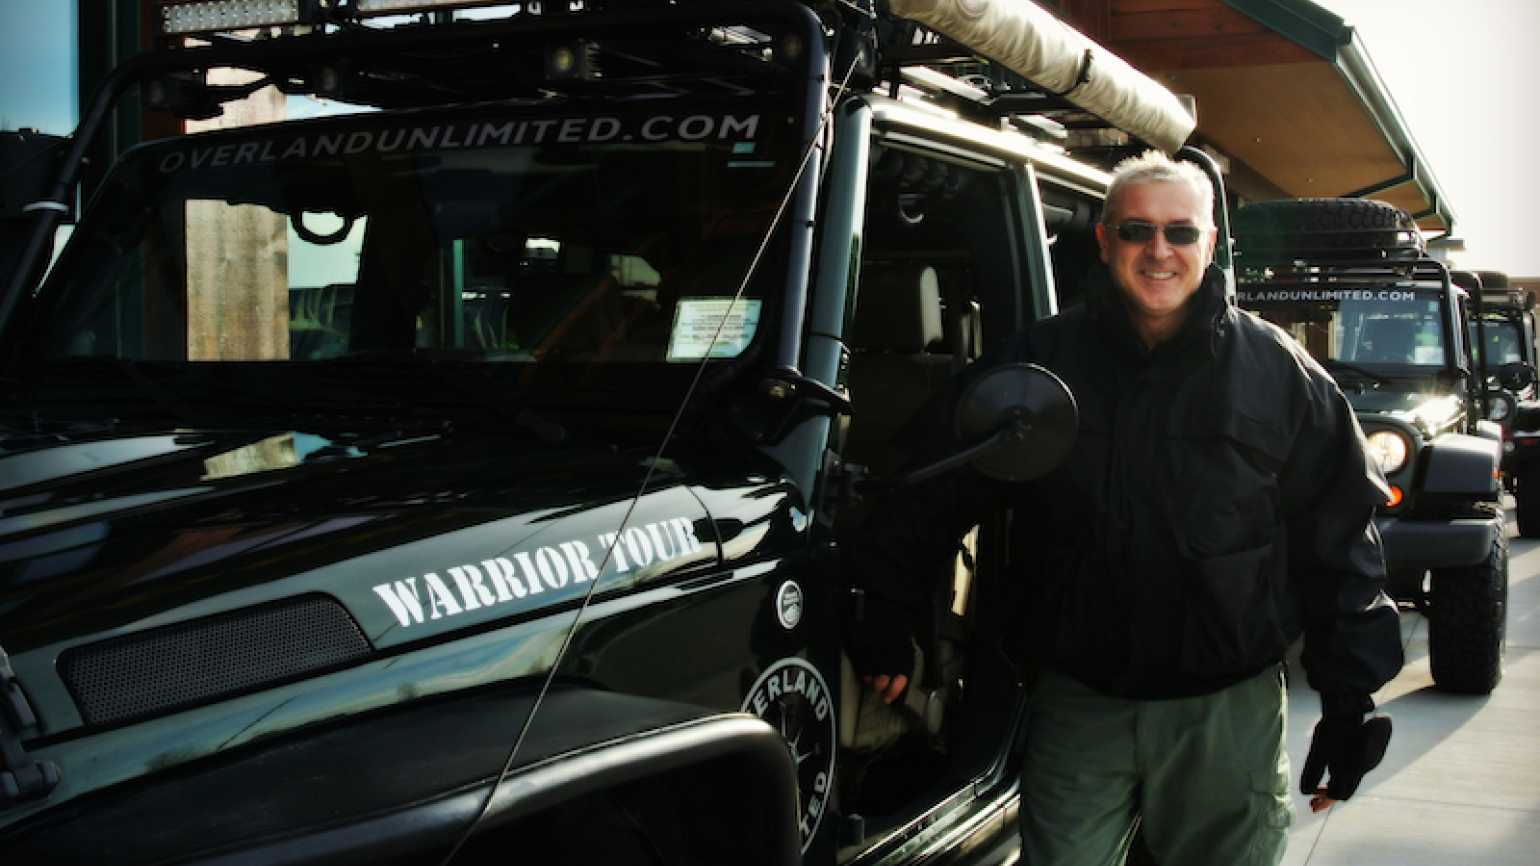 Justin Kingsland, founder of Warrior Tours. Photo by Edie Melson.